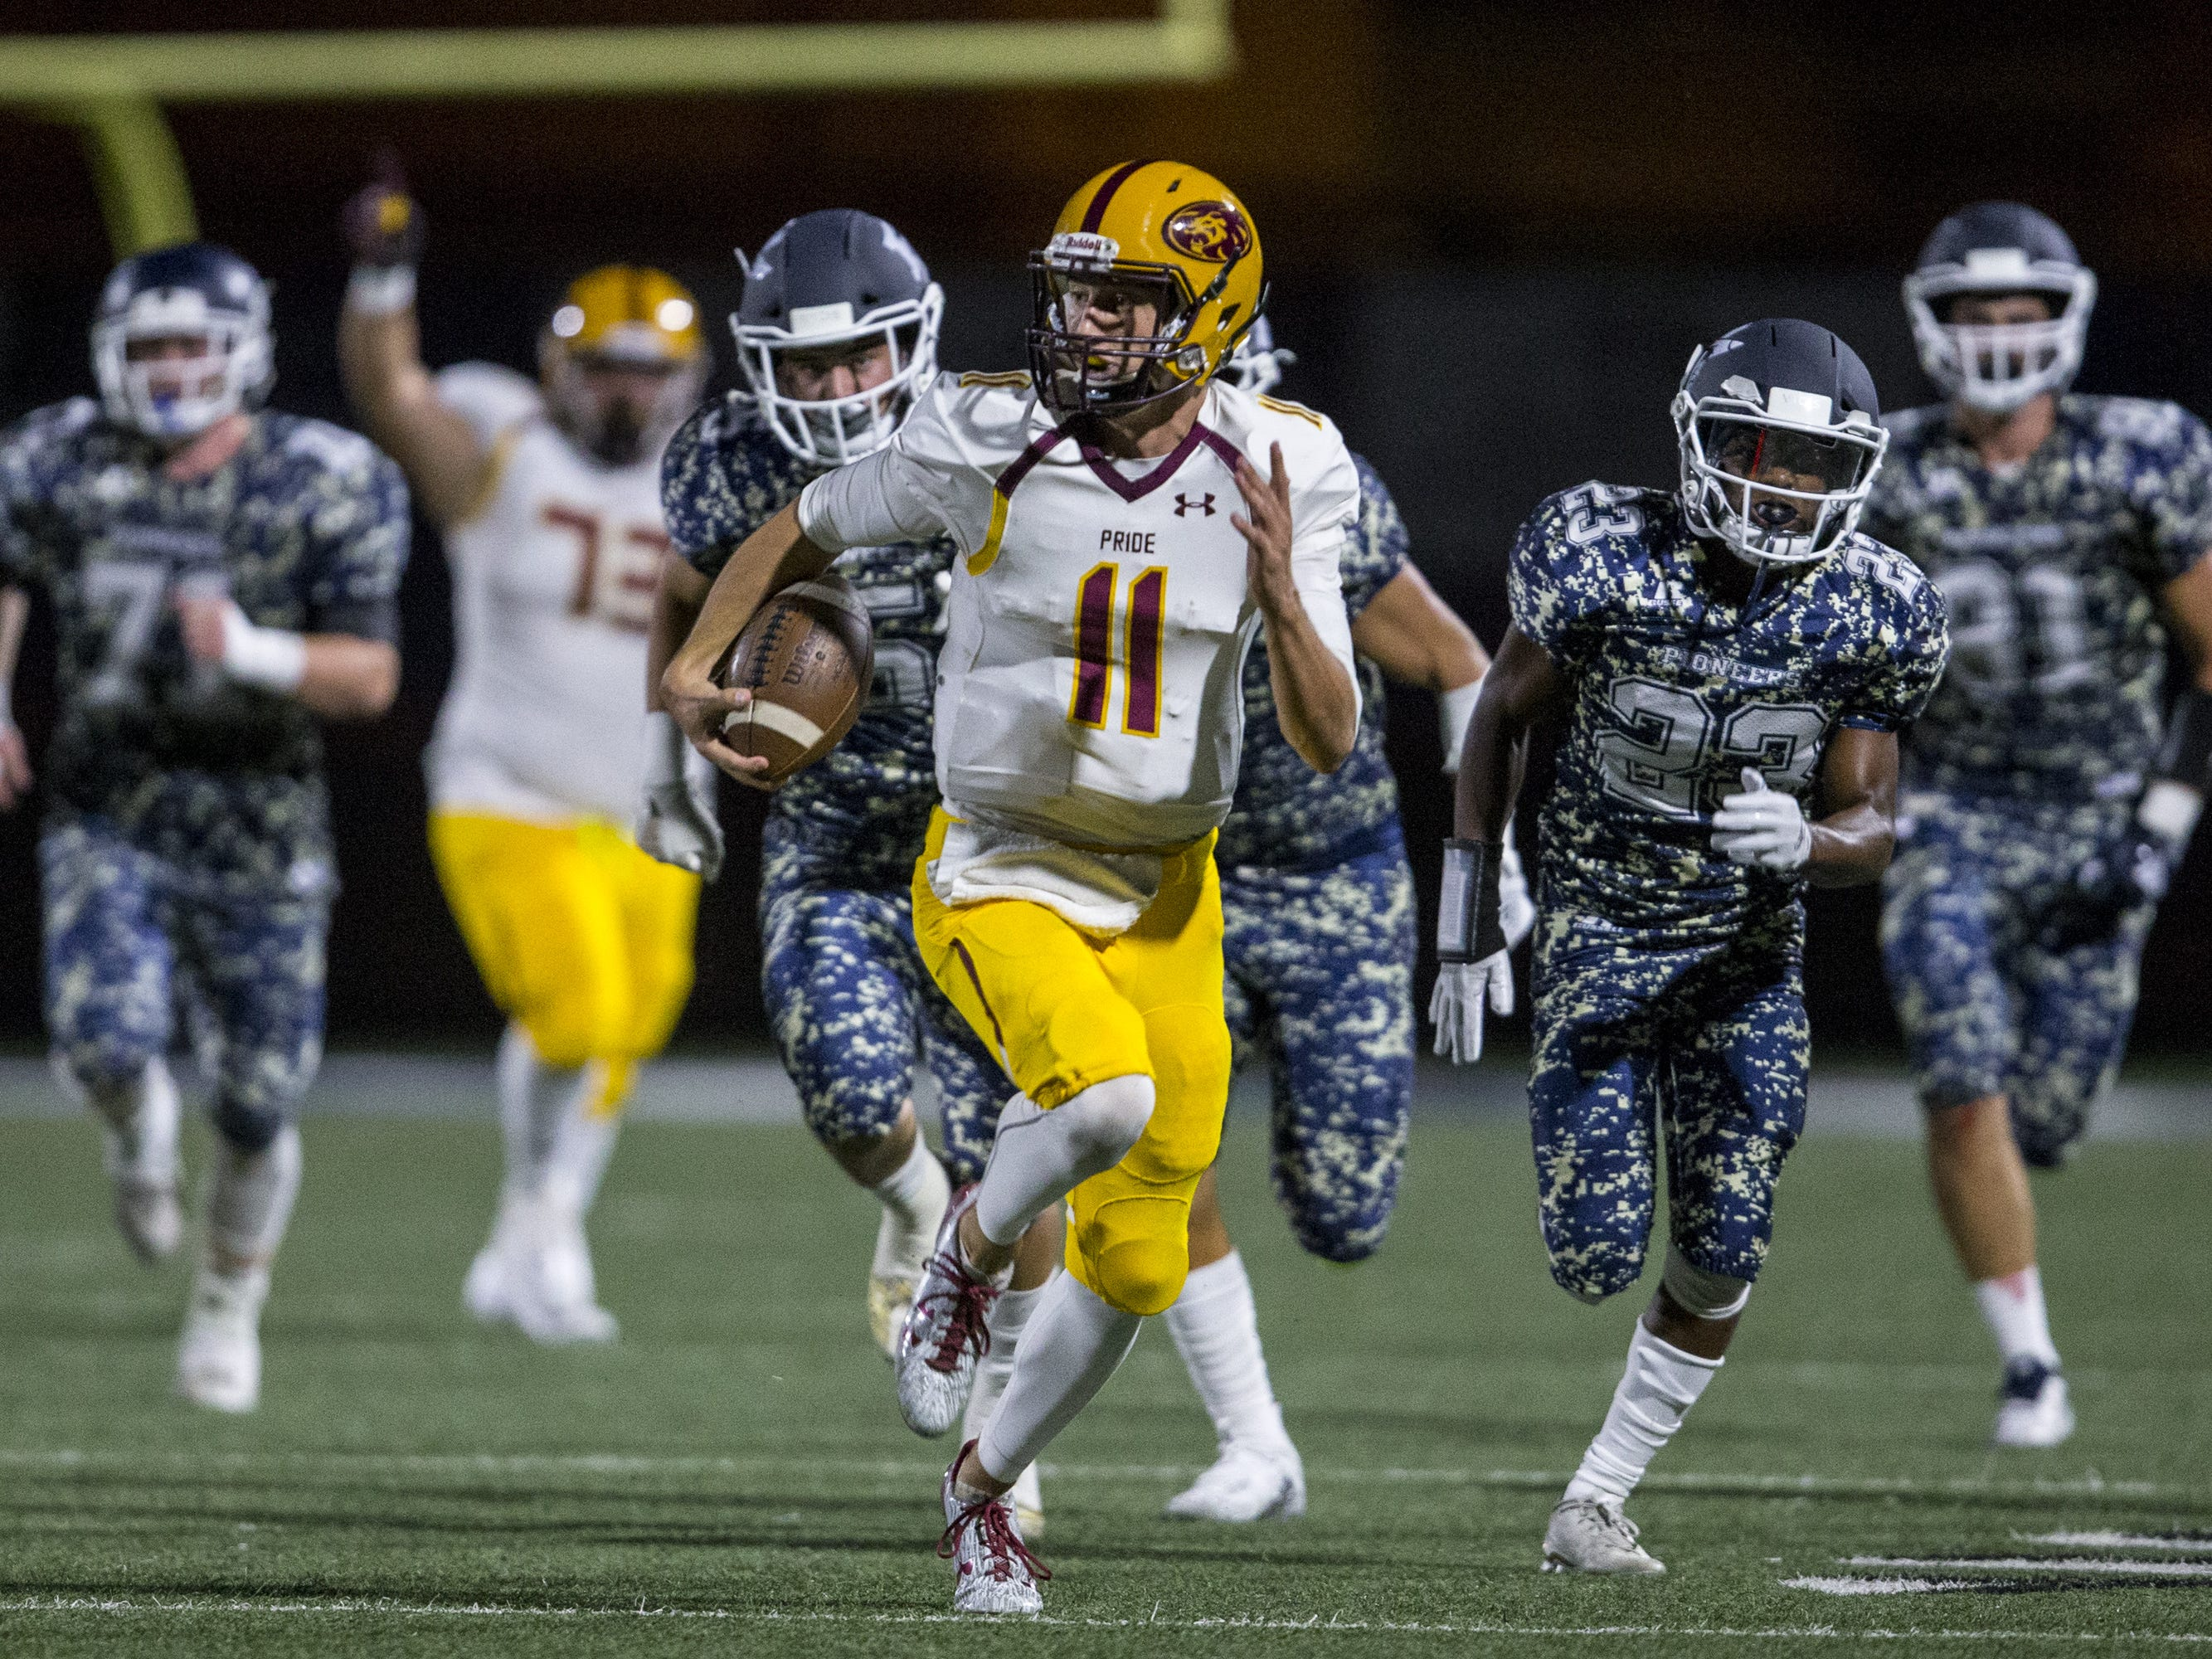 Mountain Pointe's Nick Wallerstedt rushes for a touchdown against Pinnacle during the 1st quarter on Friday, Aug. 24, 2018, at Pinnacle High School in Phoenix.   #azhsfb